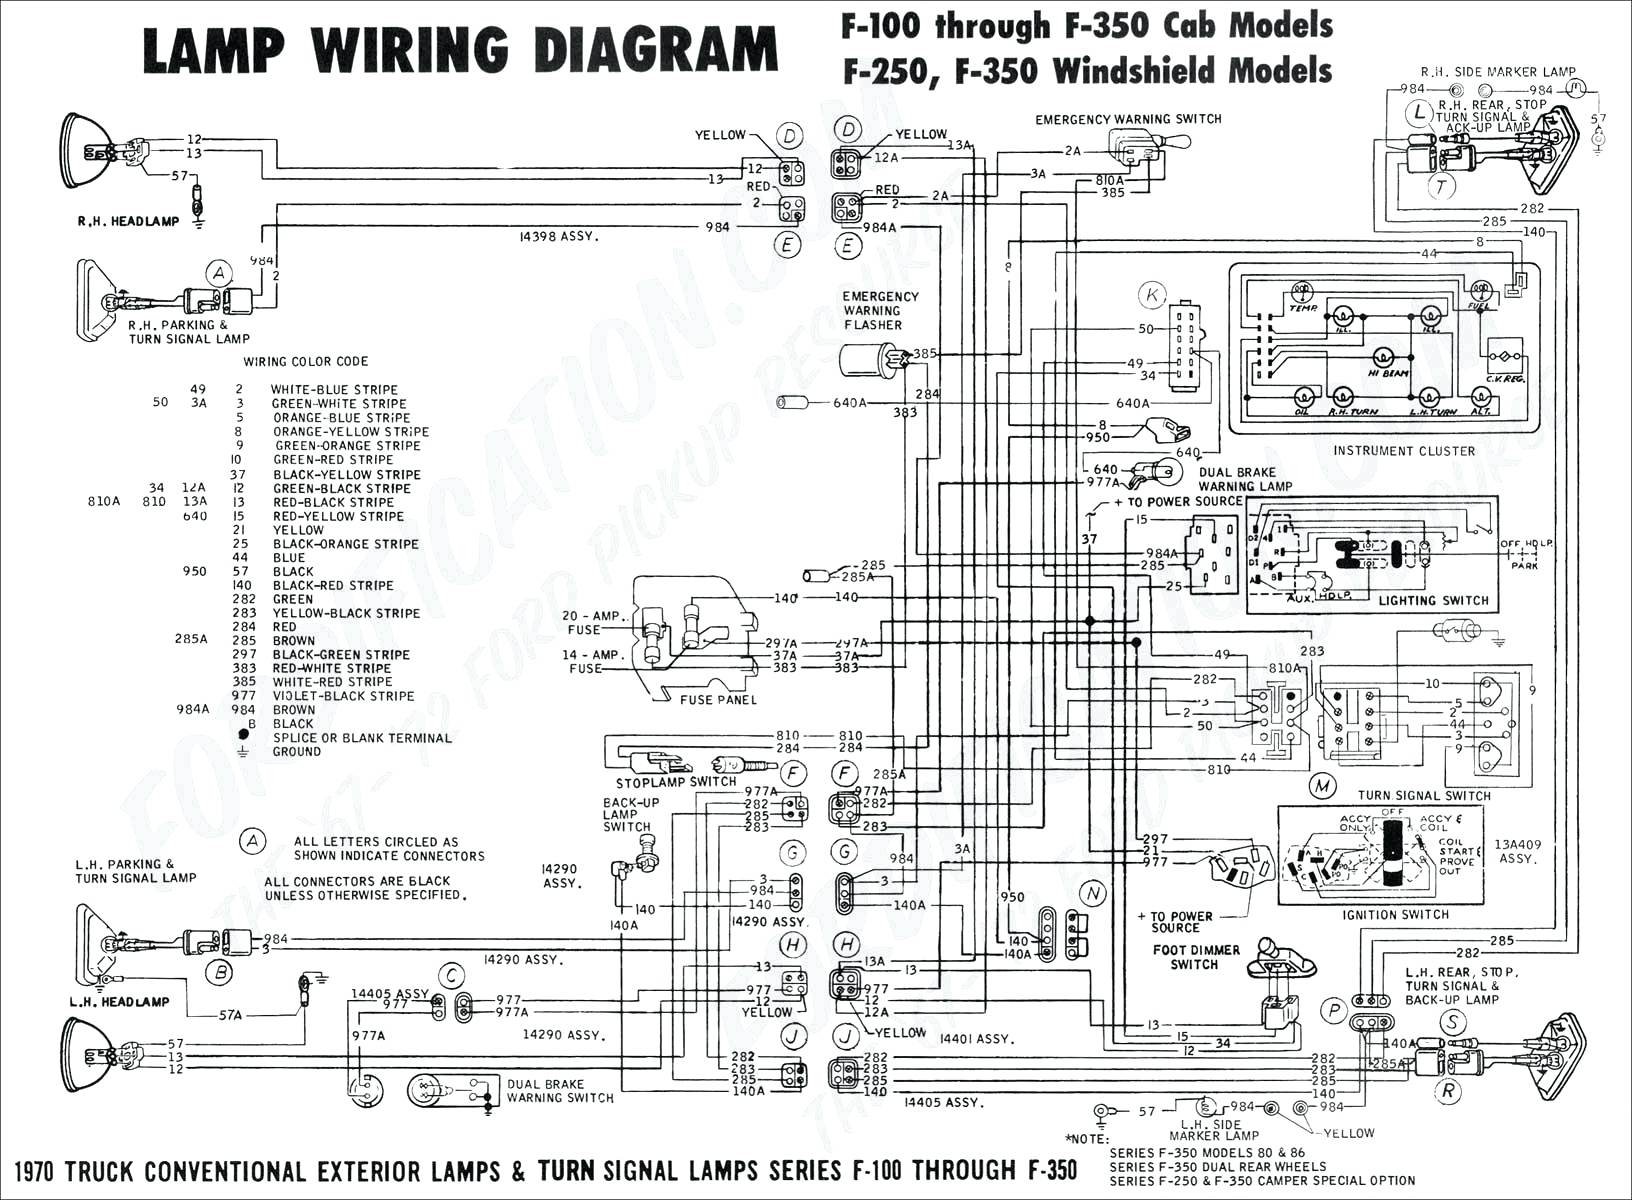 2013 ford f53 trailer wiring ford f53 chassis wiring harness wiring diagram motor home - wiring diagram and schematics #14